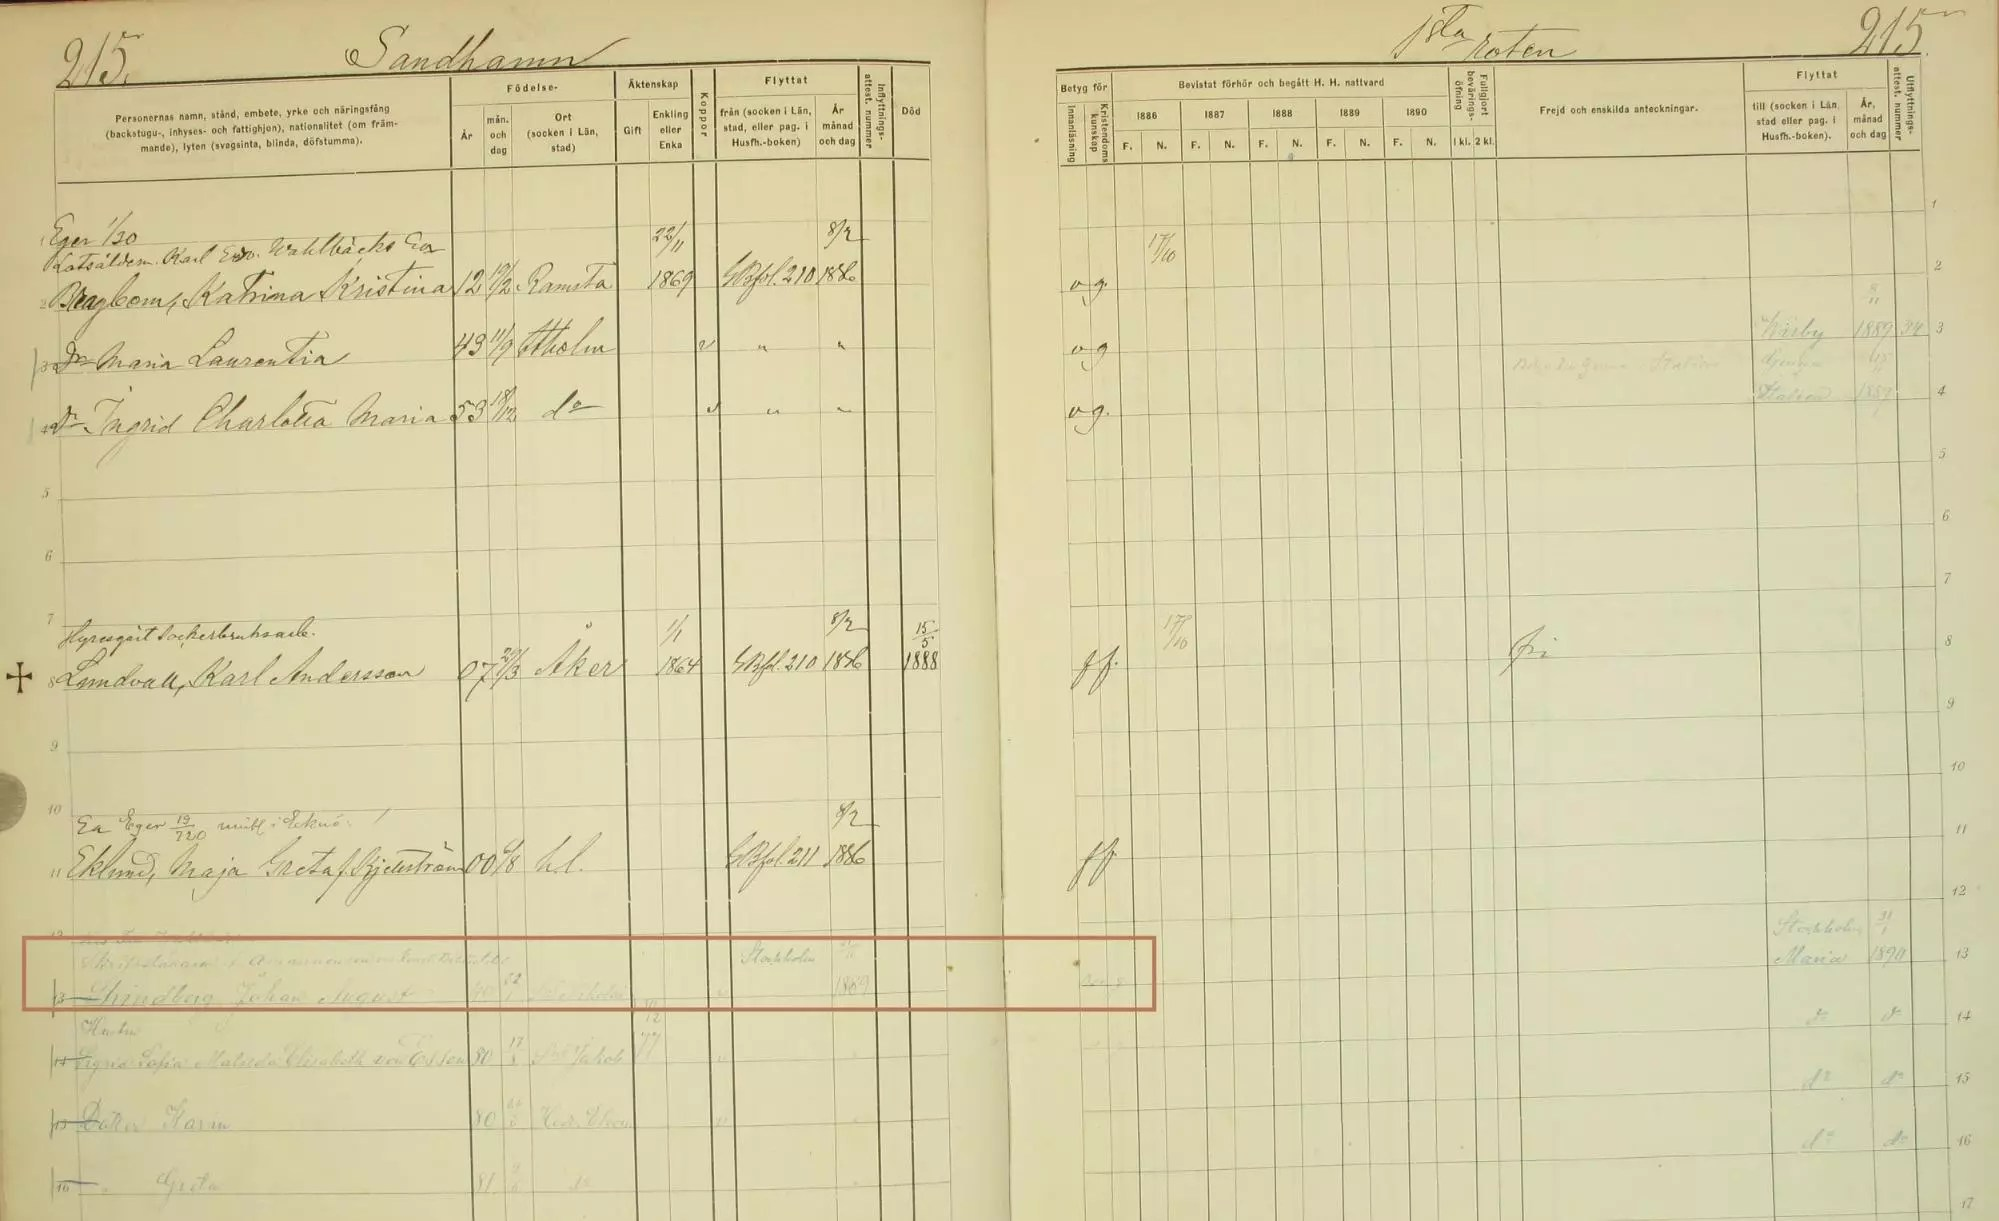 Sweden Household Examination Record of August Strindberg [Credit: MyHeritage Sweden Household Examination Books, 1820-1947]